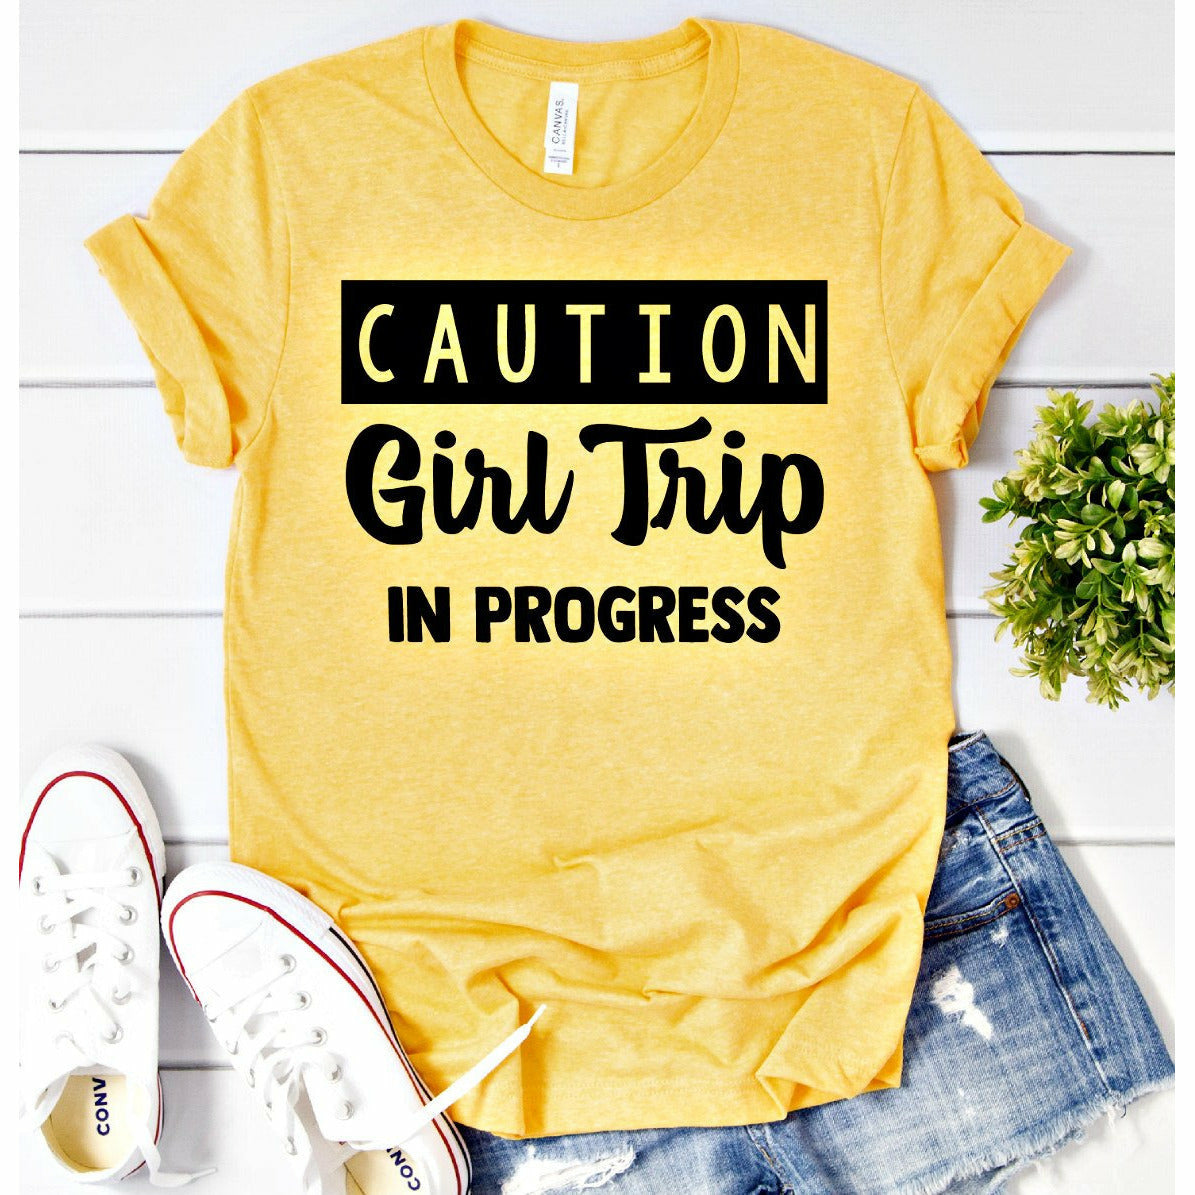 caution girls trip tee